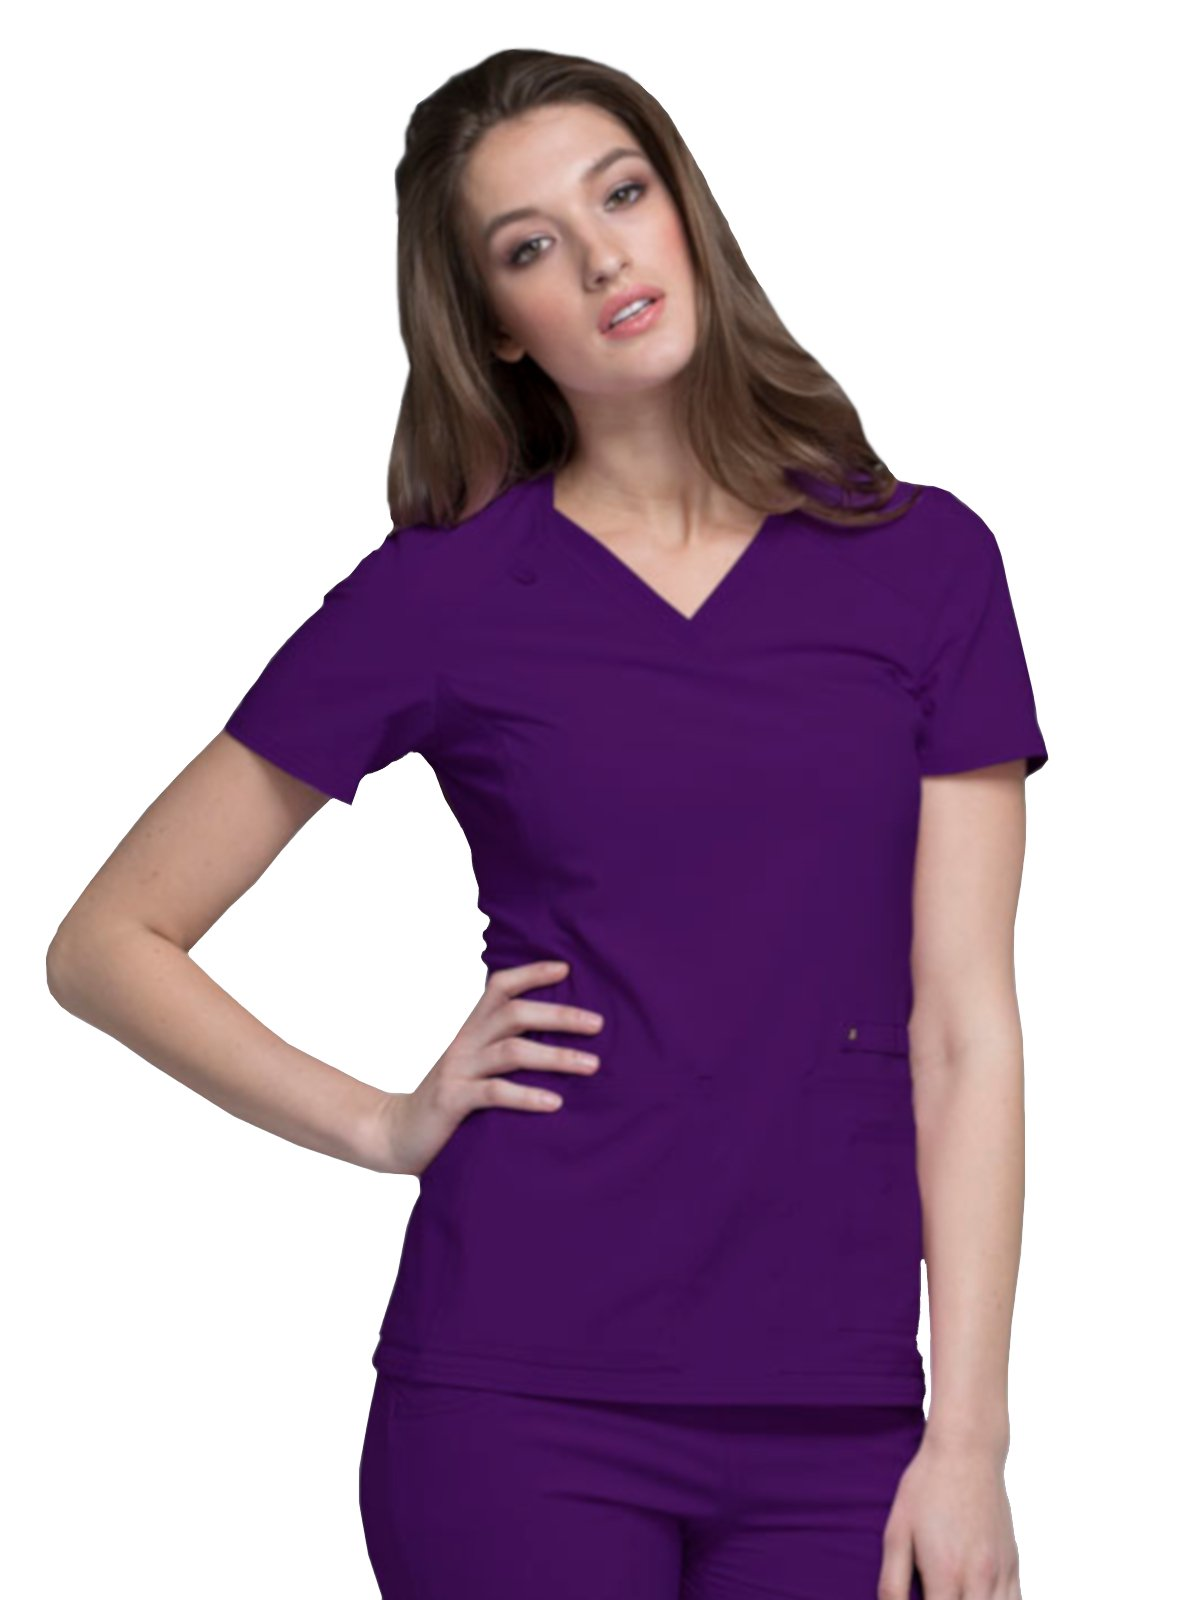 Cherokee iFlex CK605 V-Neck Top Eggplant 2XL by Cherokee